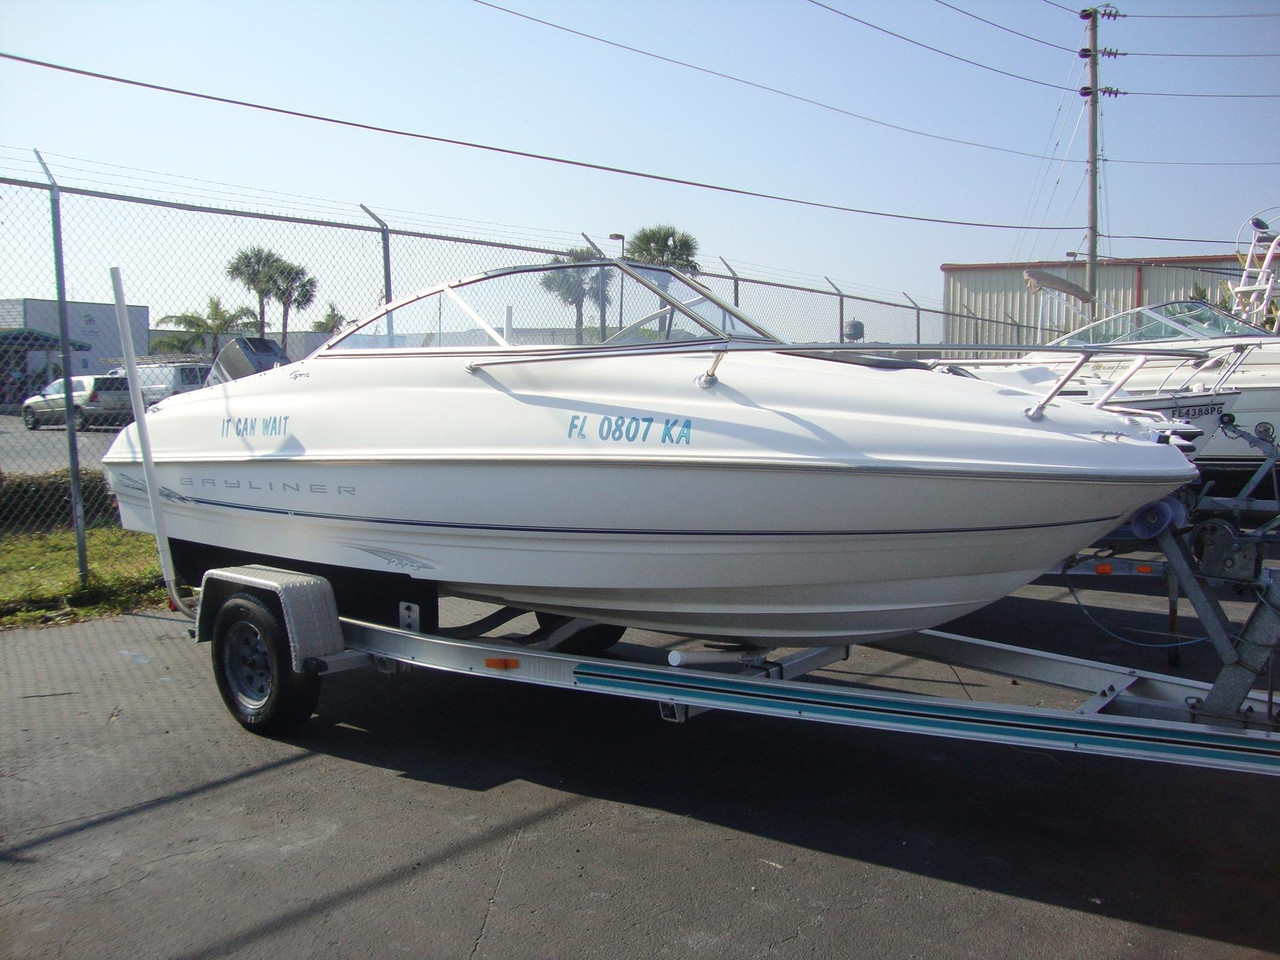 1998 Used Bayliner Ciara Cuddy Cabin Boat For Sale - $5,995 - New